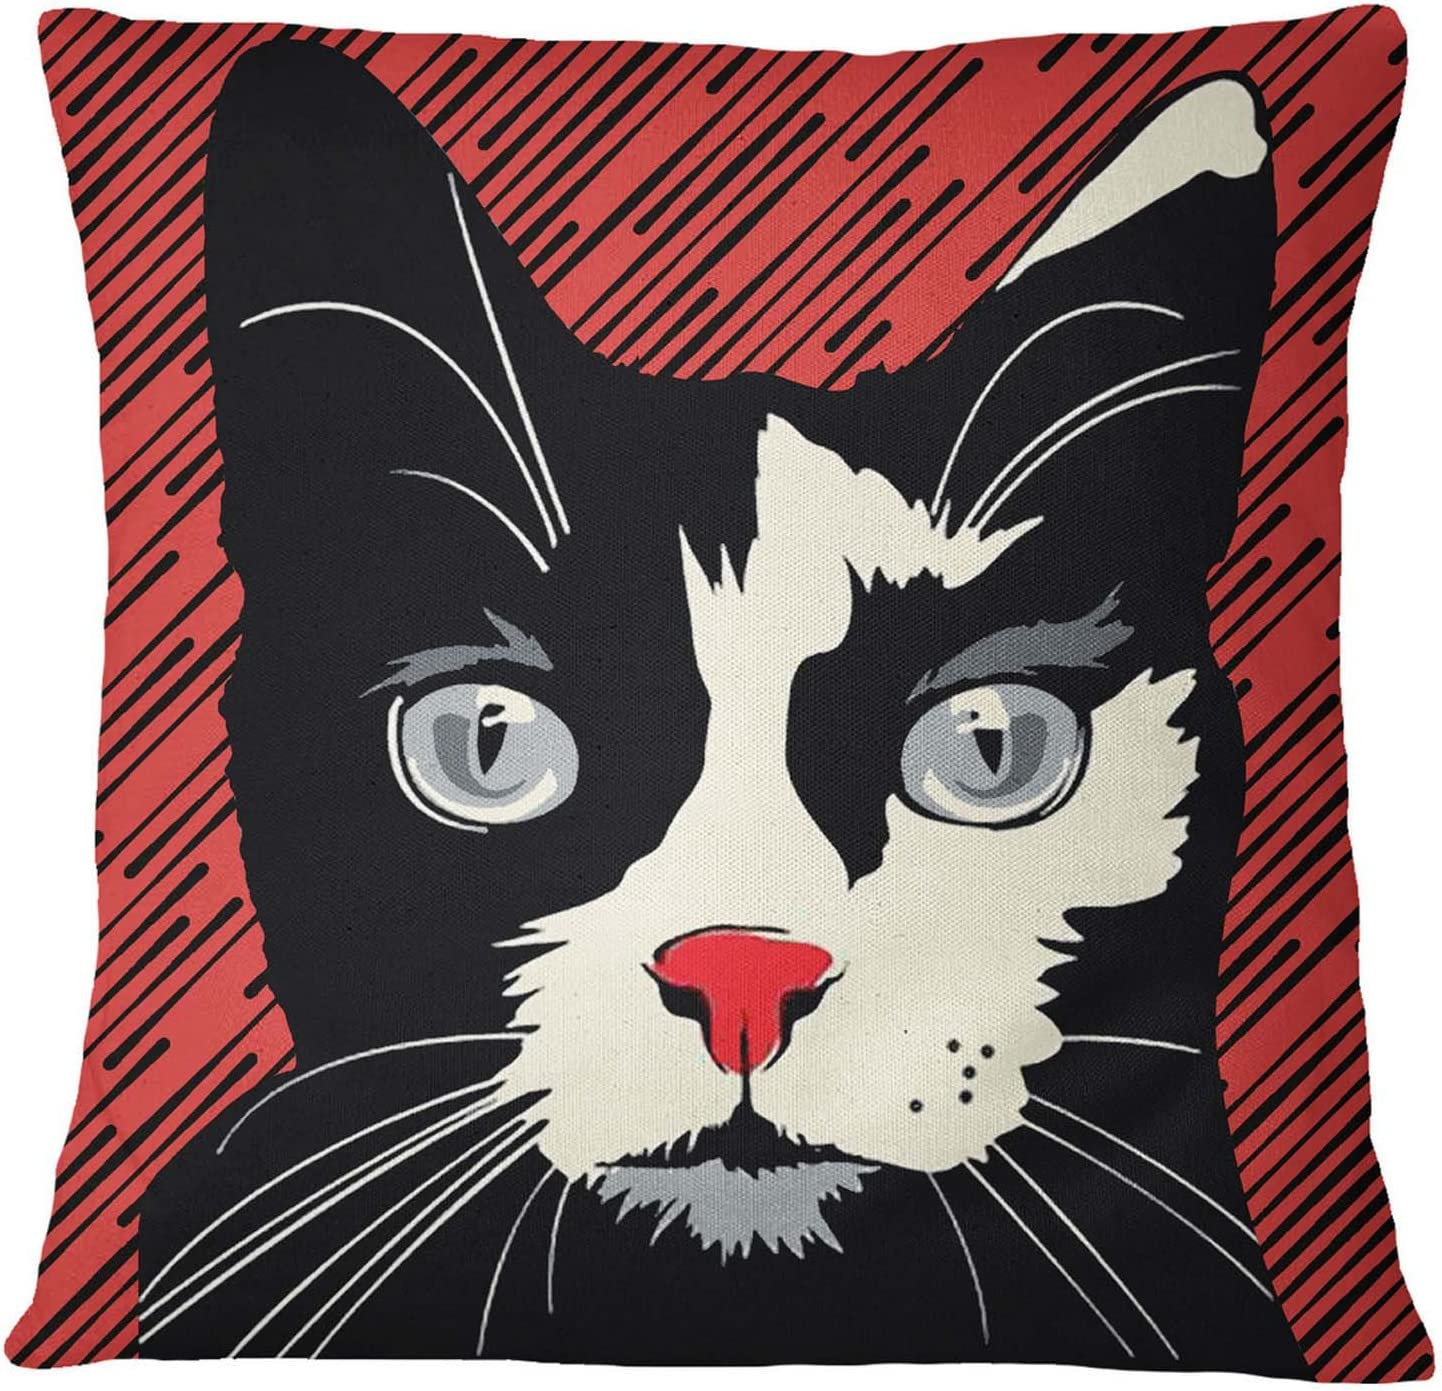 S4Sassy Black Cat Print Home Decorative Square Cushion Cover Pillow Case 12 x 12 Inches